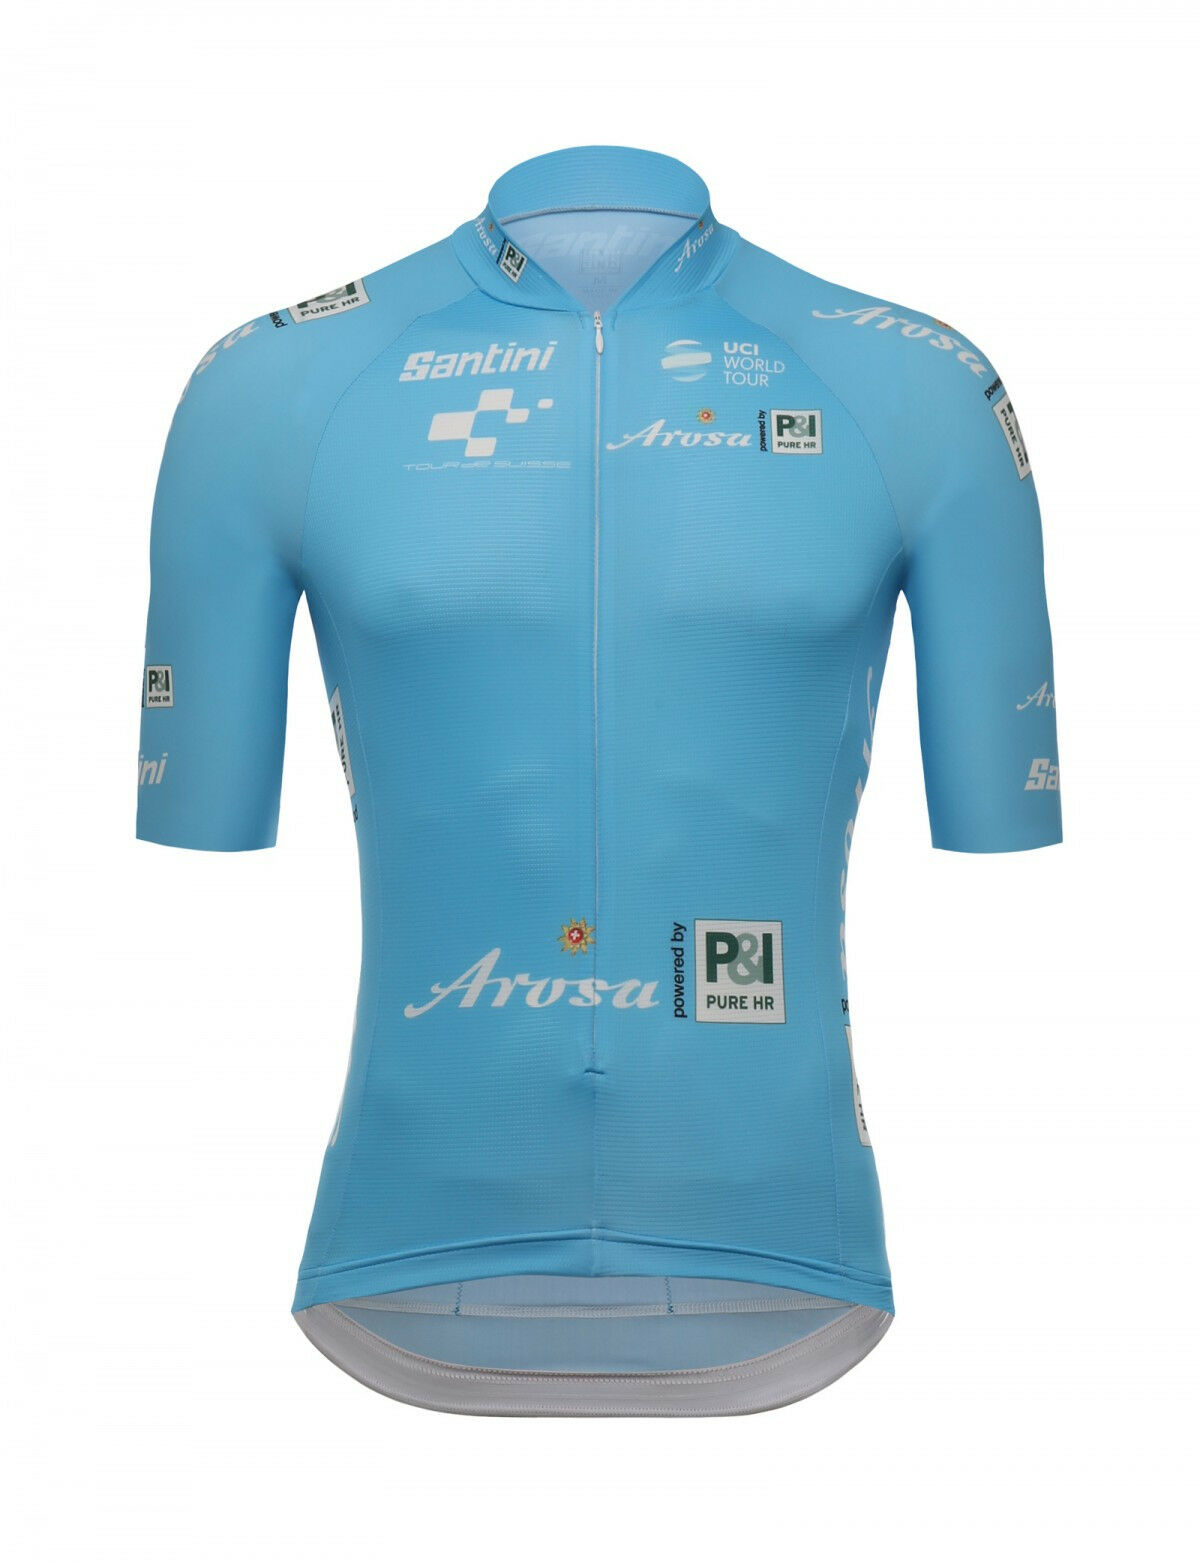 SHIRT blueE TOUR DE SWISS 2018 Size M